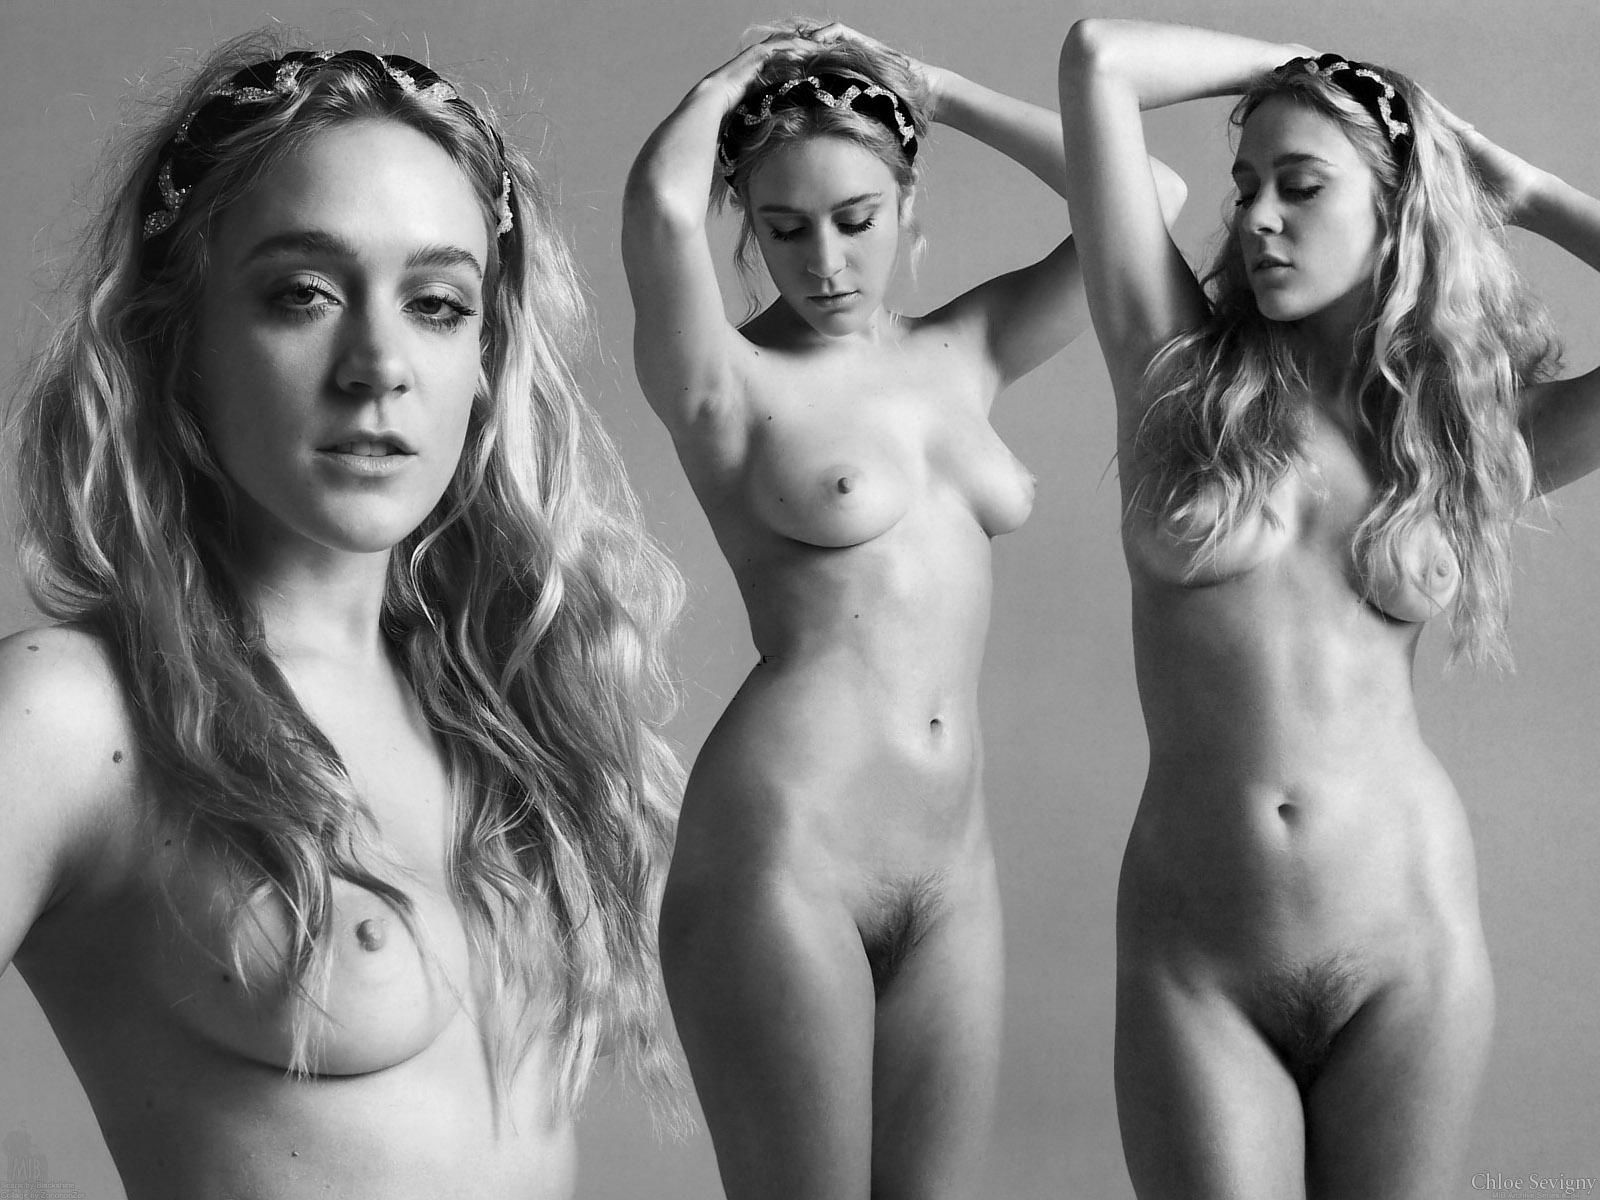 Chloe sevigny naked pictures